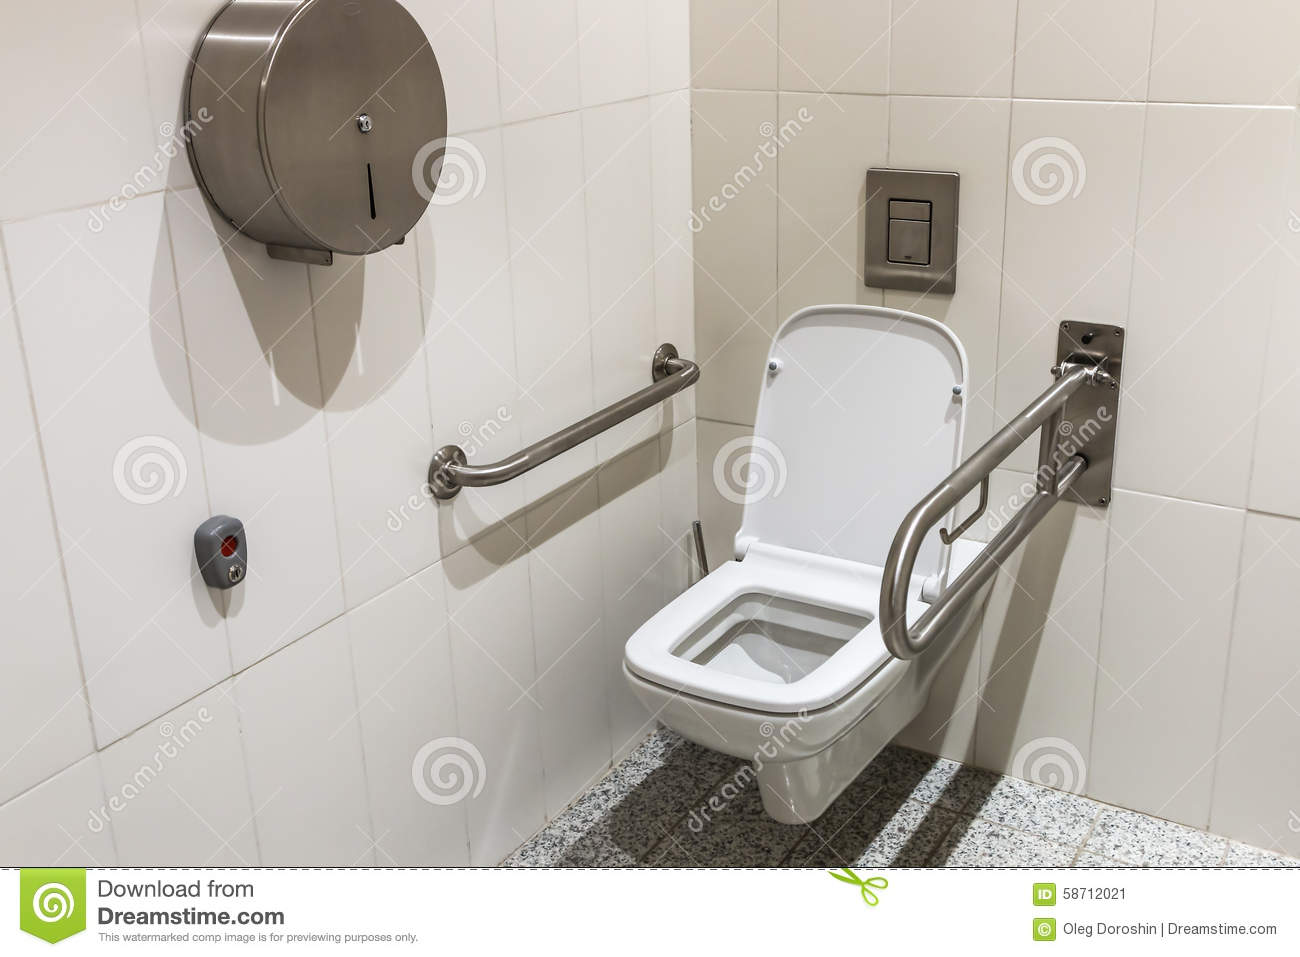 Toilet With Handrails For The Disabled Stock Image - Image of house ...